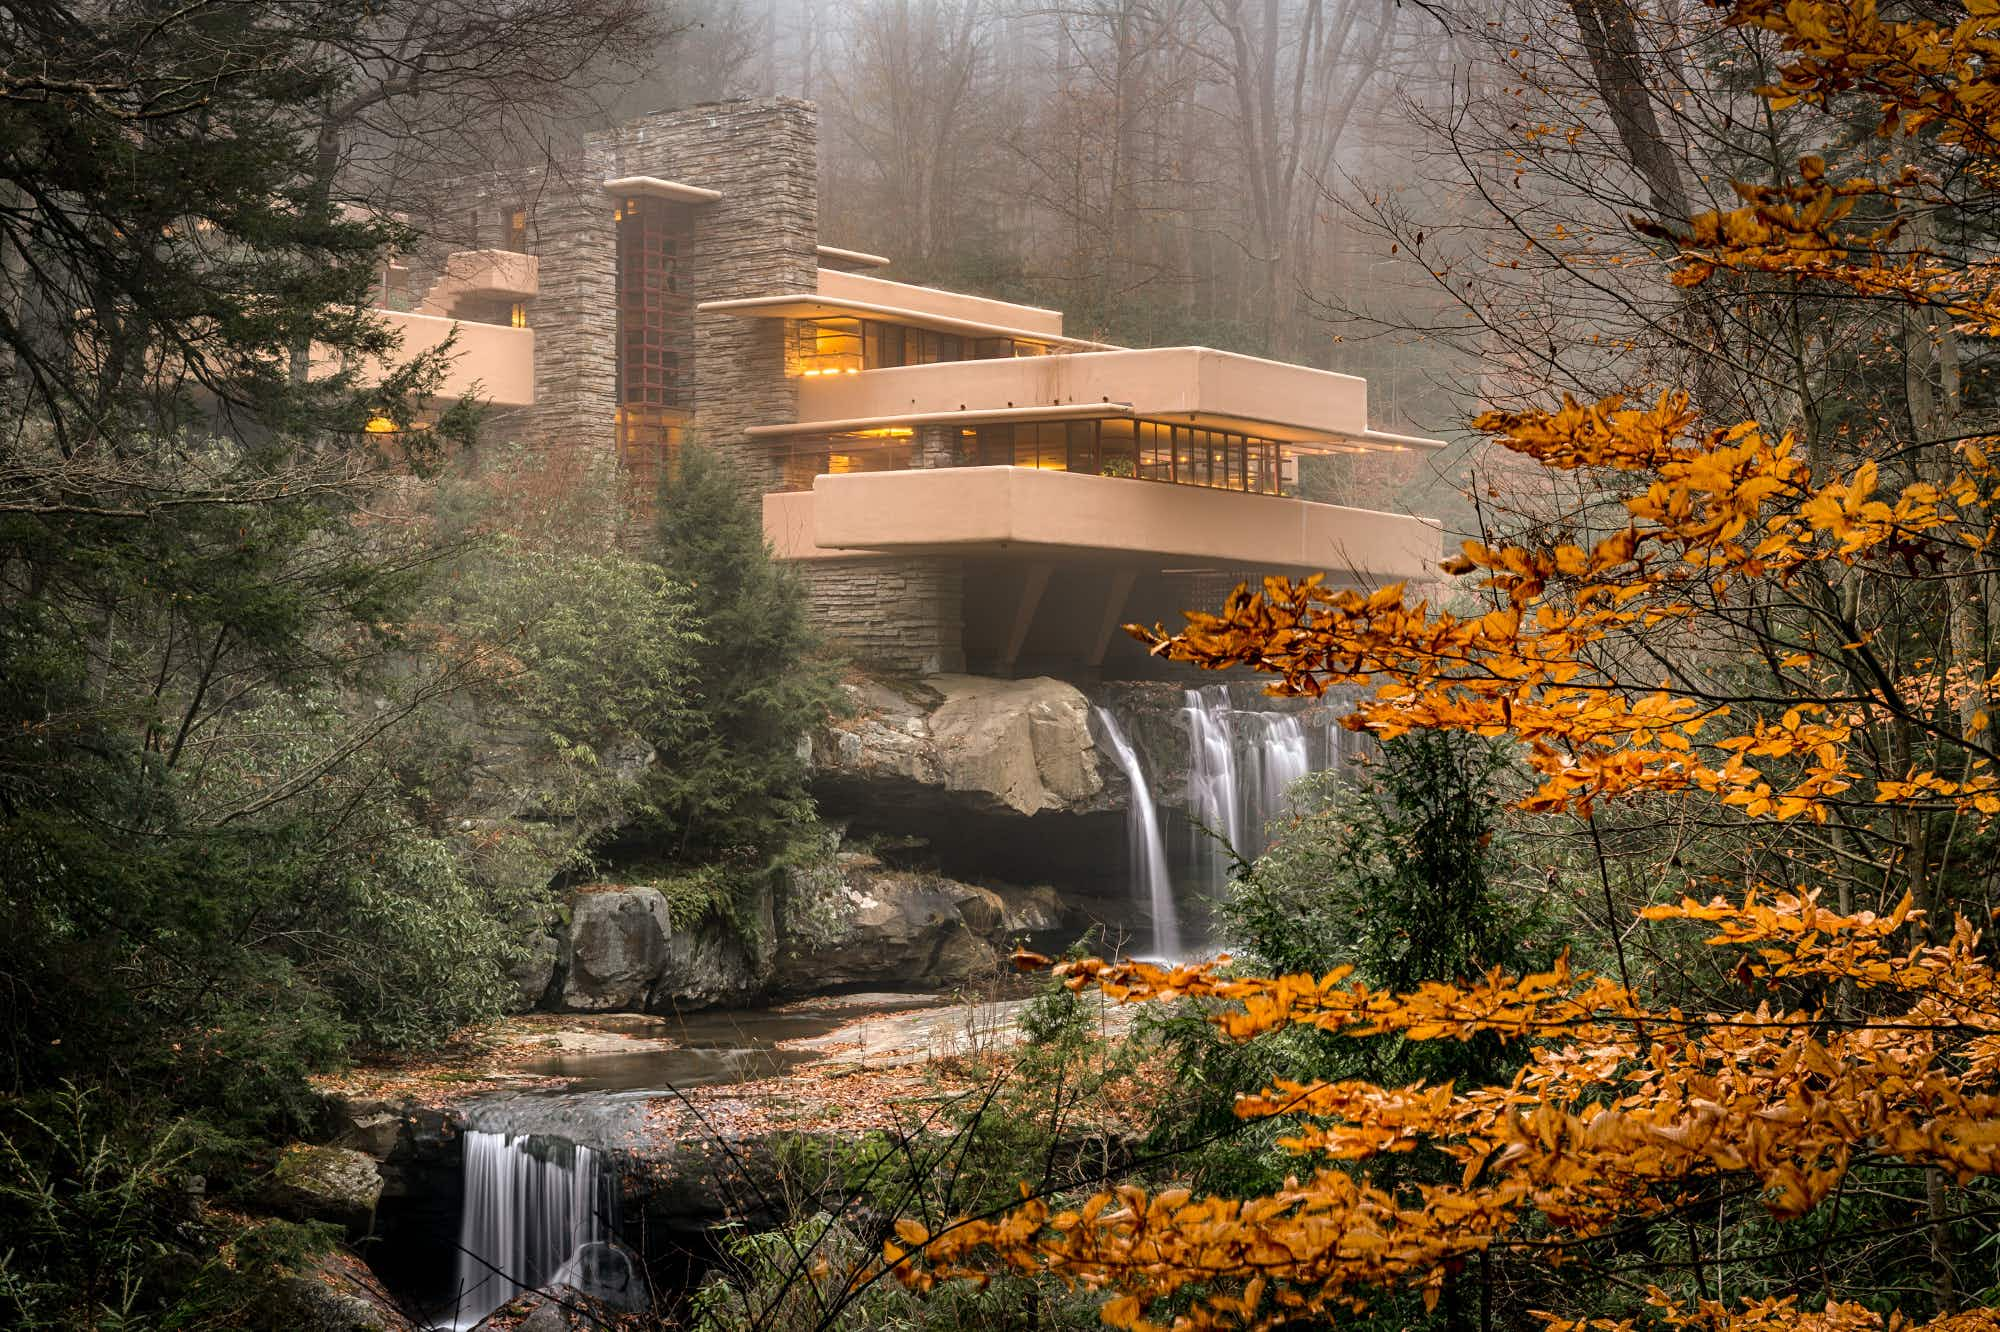 The quest to photograph every Frank Lloyd Wright design in the world